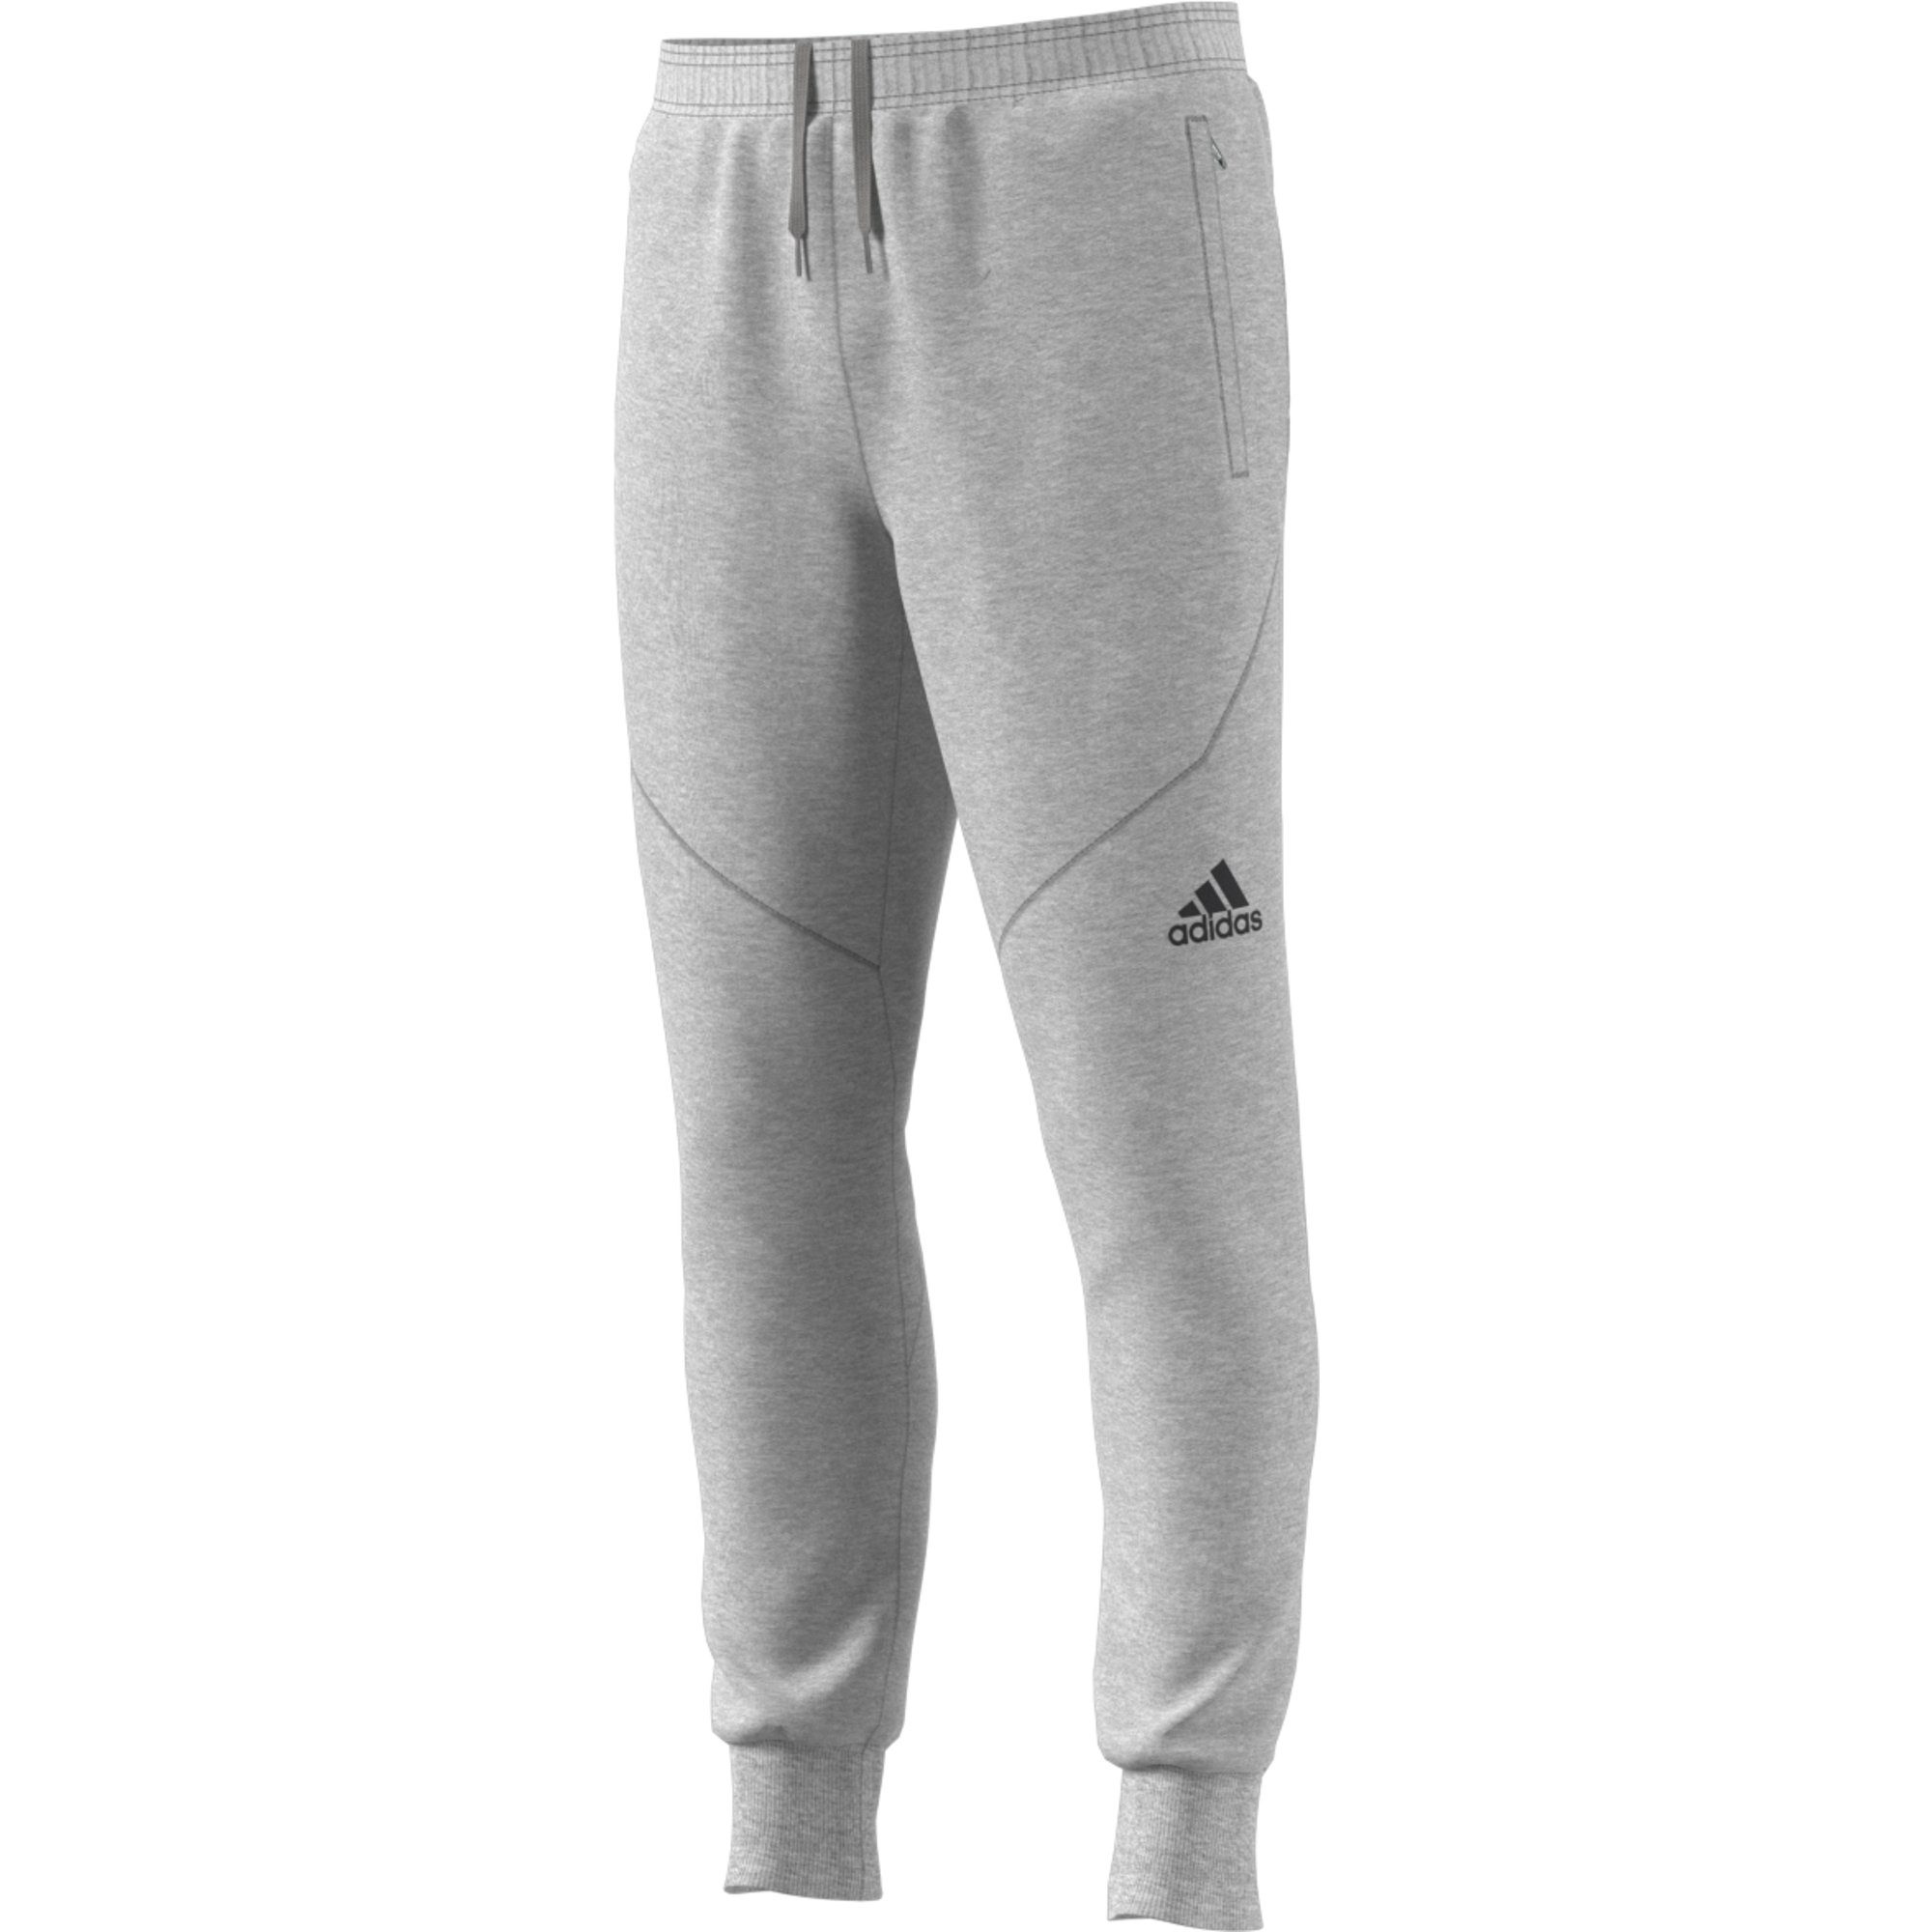 Adidas Prime Pant CD7832 grey Anderson and Hill Sportspower